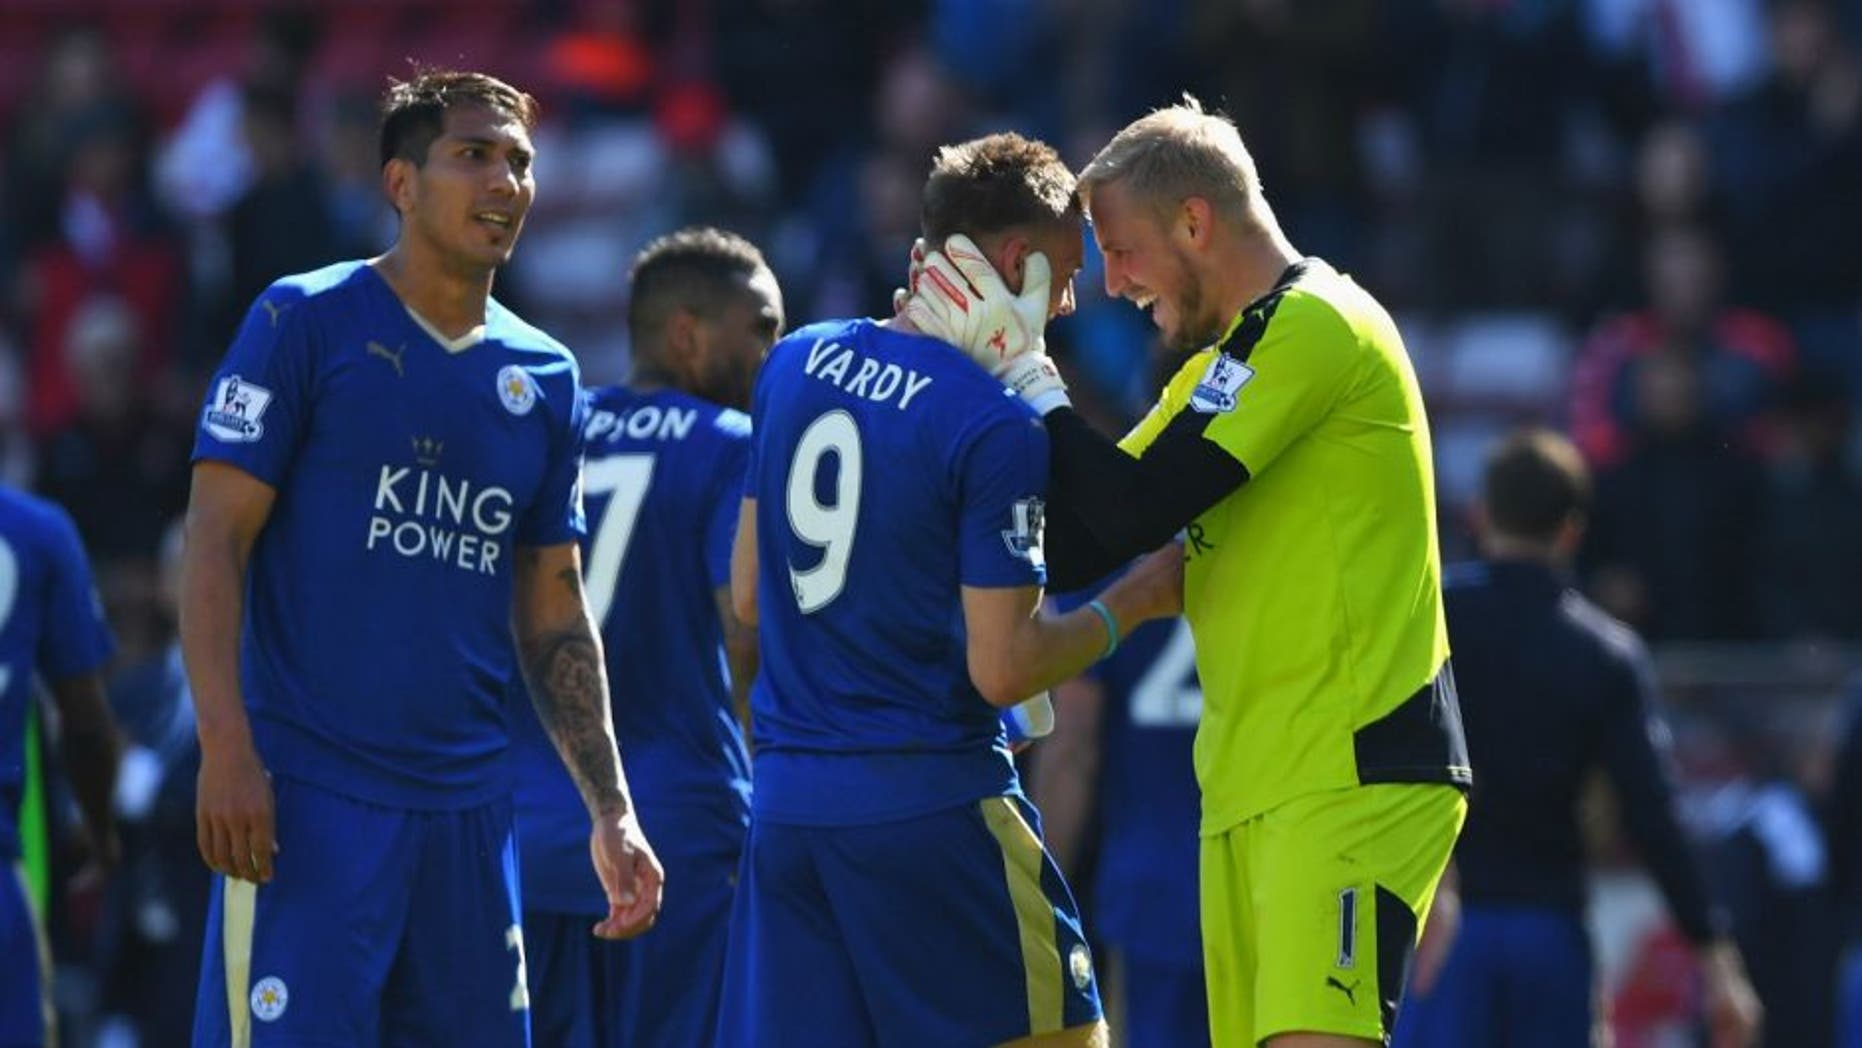 SUNDERLAND, UNITED KINGDOM - APRIL 10: Kasper Schmeichel and Jamie Vardy of Leicester City celebrate victory after the Barclays Premier League match between Sunderland and Leicester City at the Stadium of Light on April 10, 2016 in Sunderland, England. (Photo by Shaun Botterill/Getty Images)